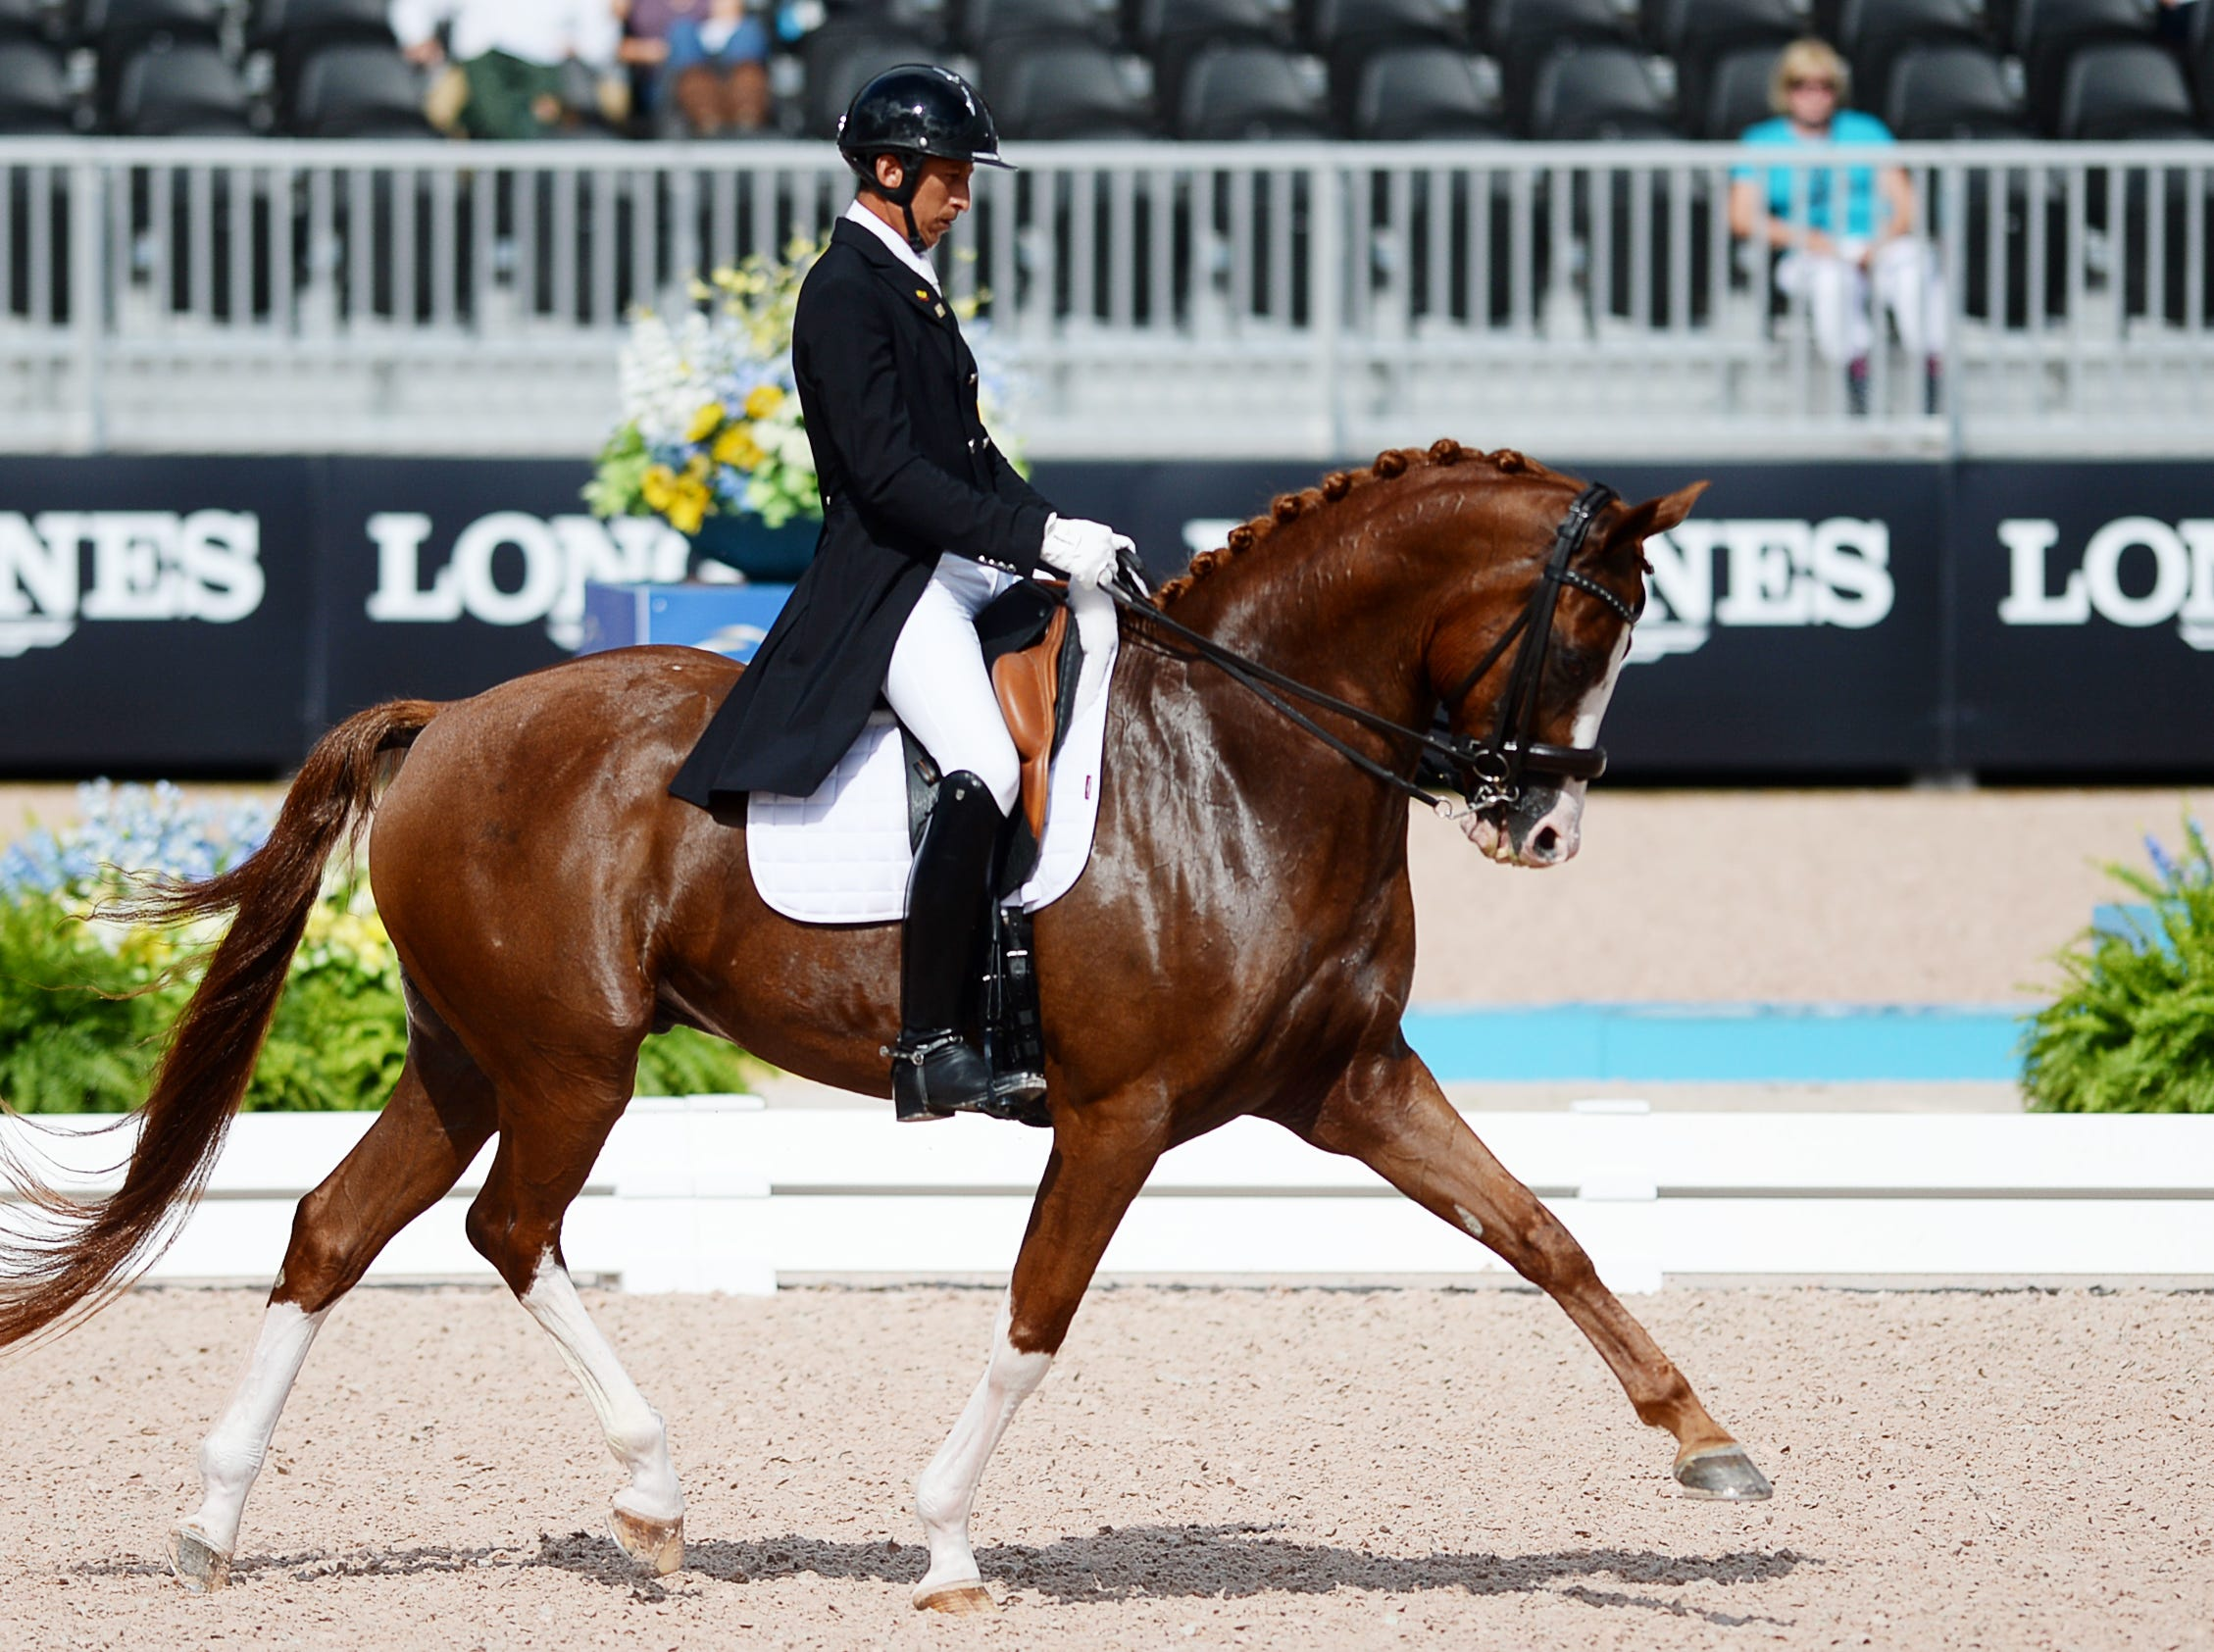 Julio Mendoza, of Columbus, NC, competed for Ecuador in dressage at the World Equestrian Games in Tryon Sept. 13, 2018.